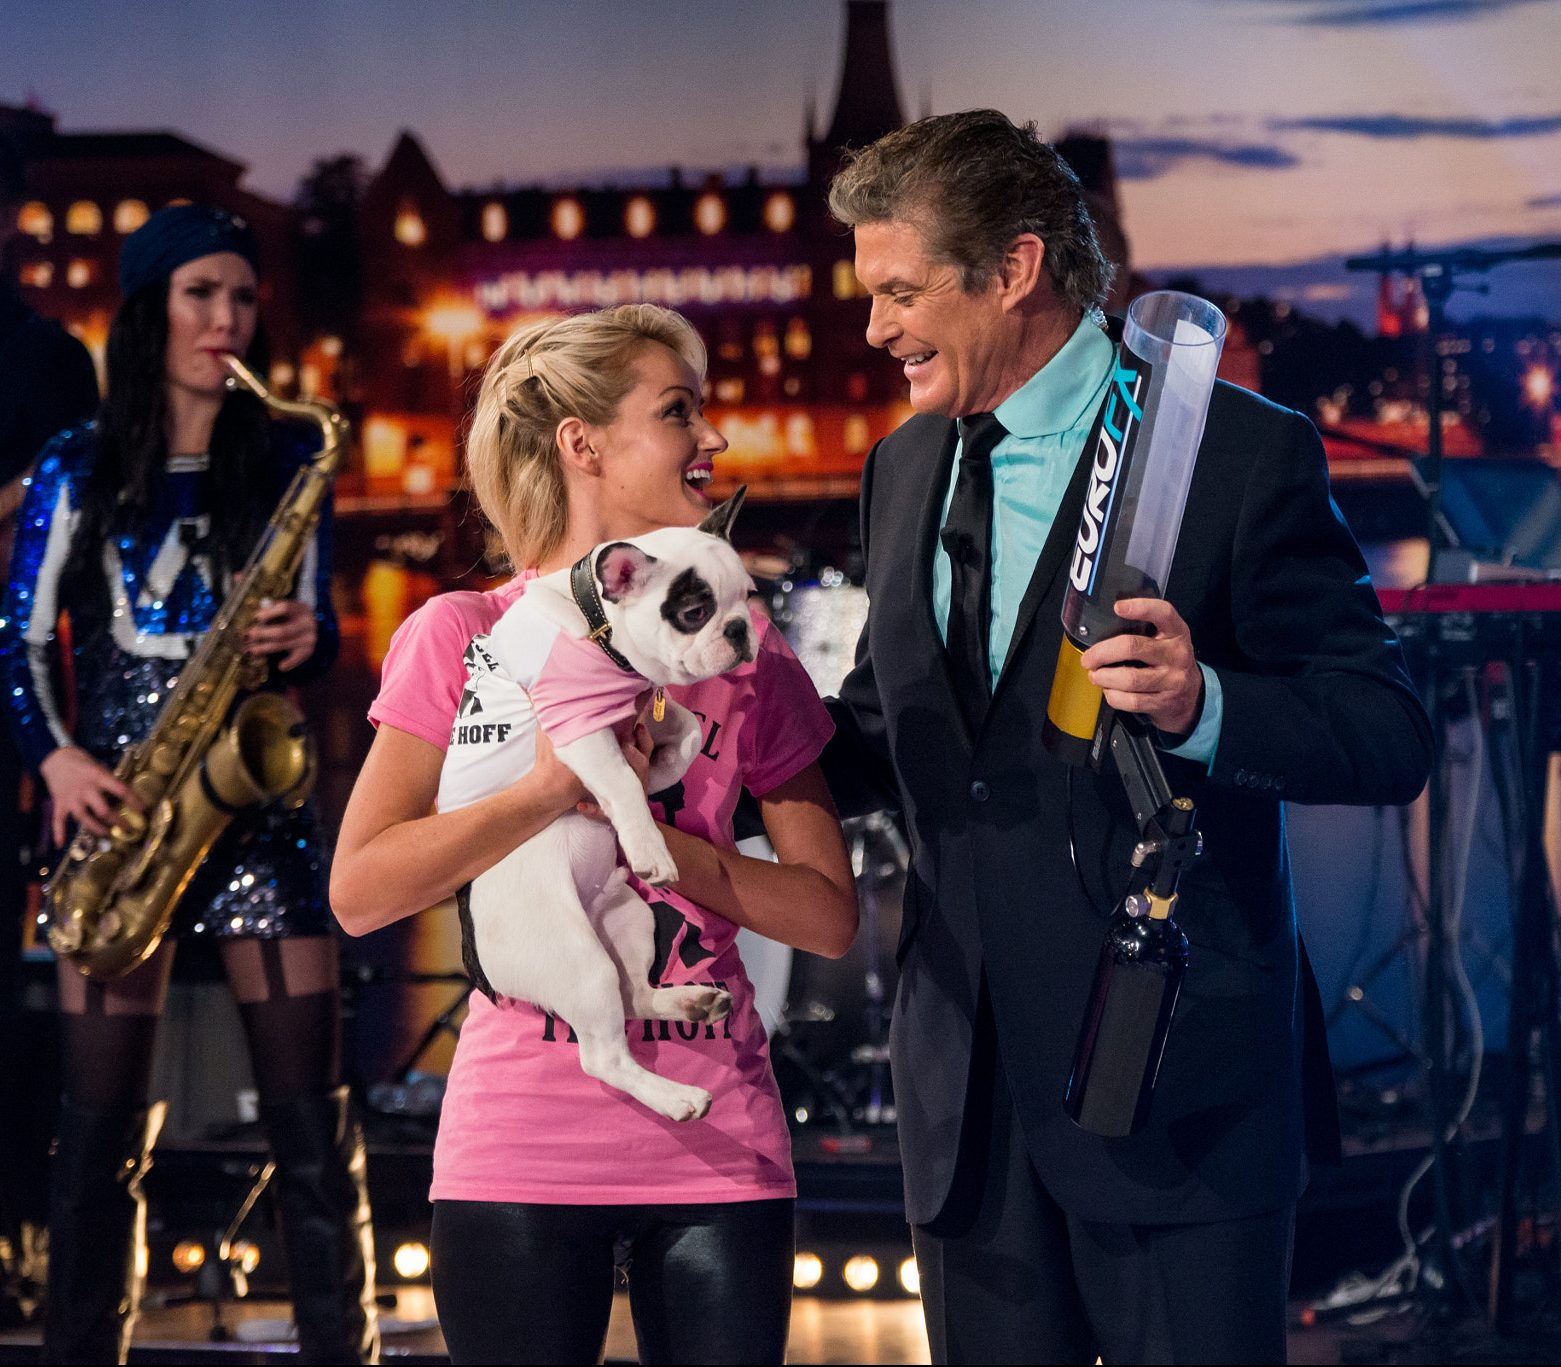 David Hasselhoff With Hayley Roberts 59205654 e1622030322386 Legendary 80s Actors With Massive Relationship Age Gaps